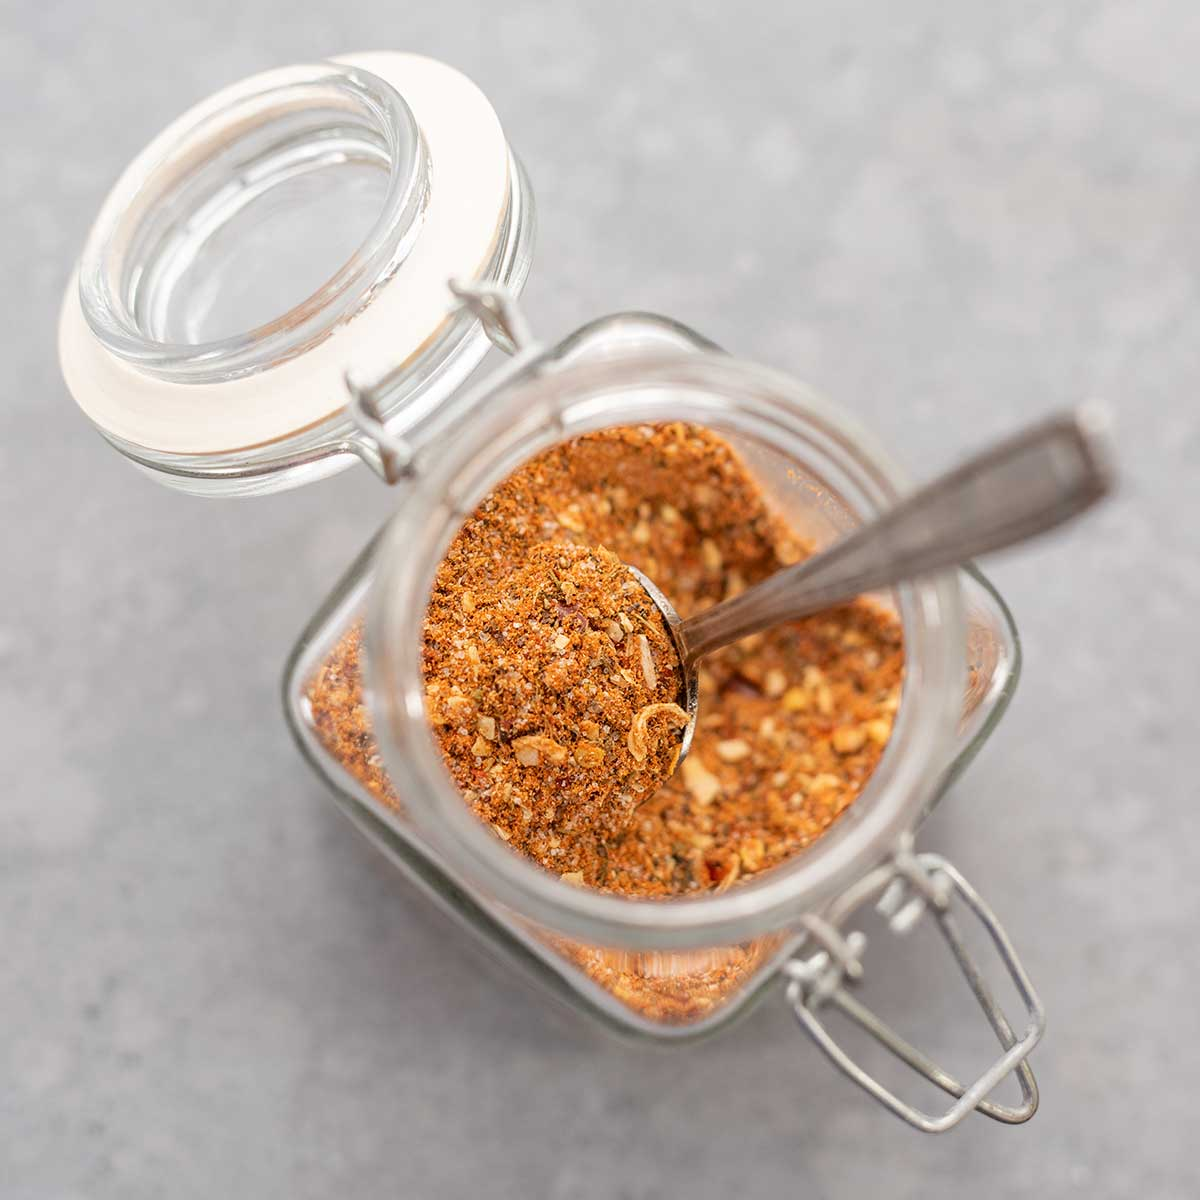 Montreal steak seasoning in a glass jar with a spoon sticking out